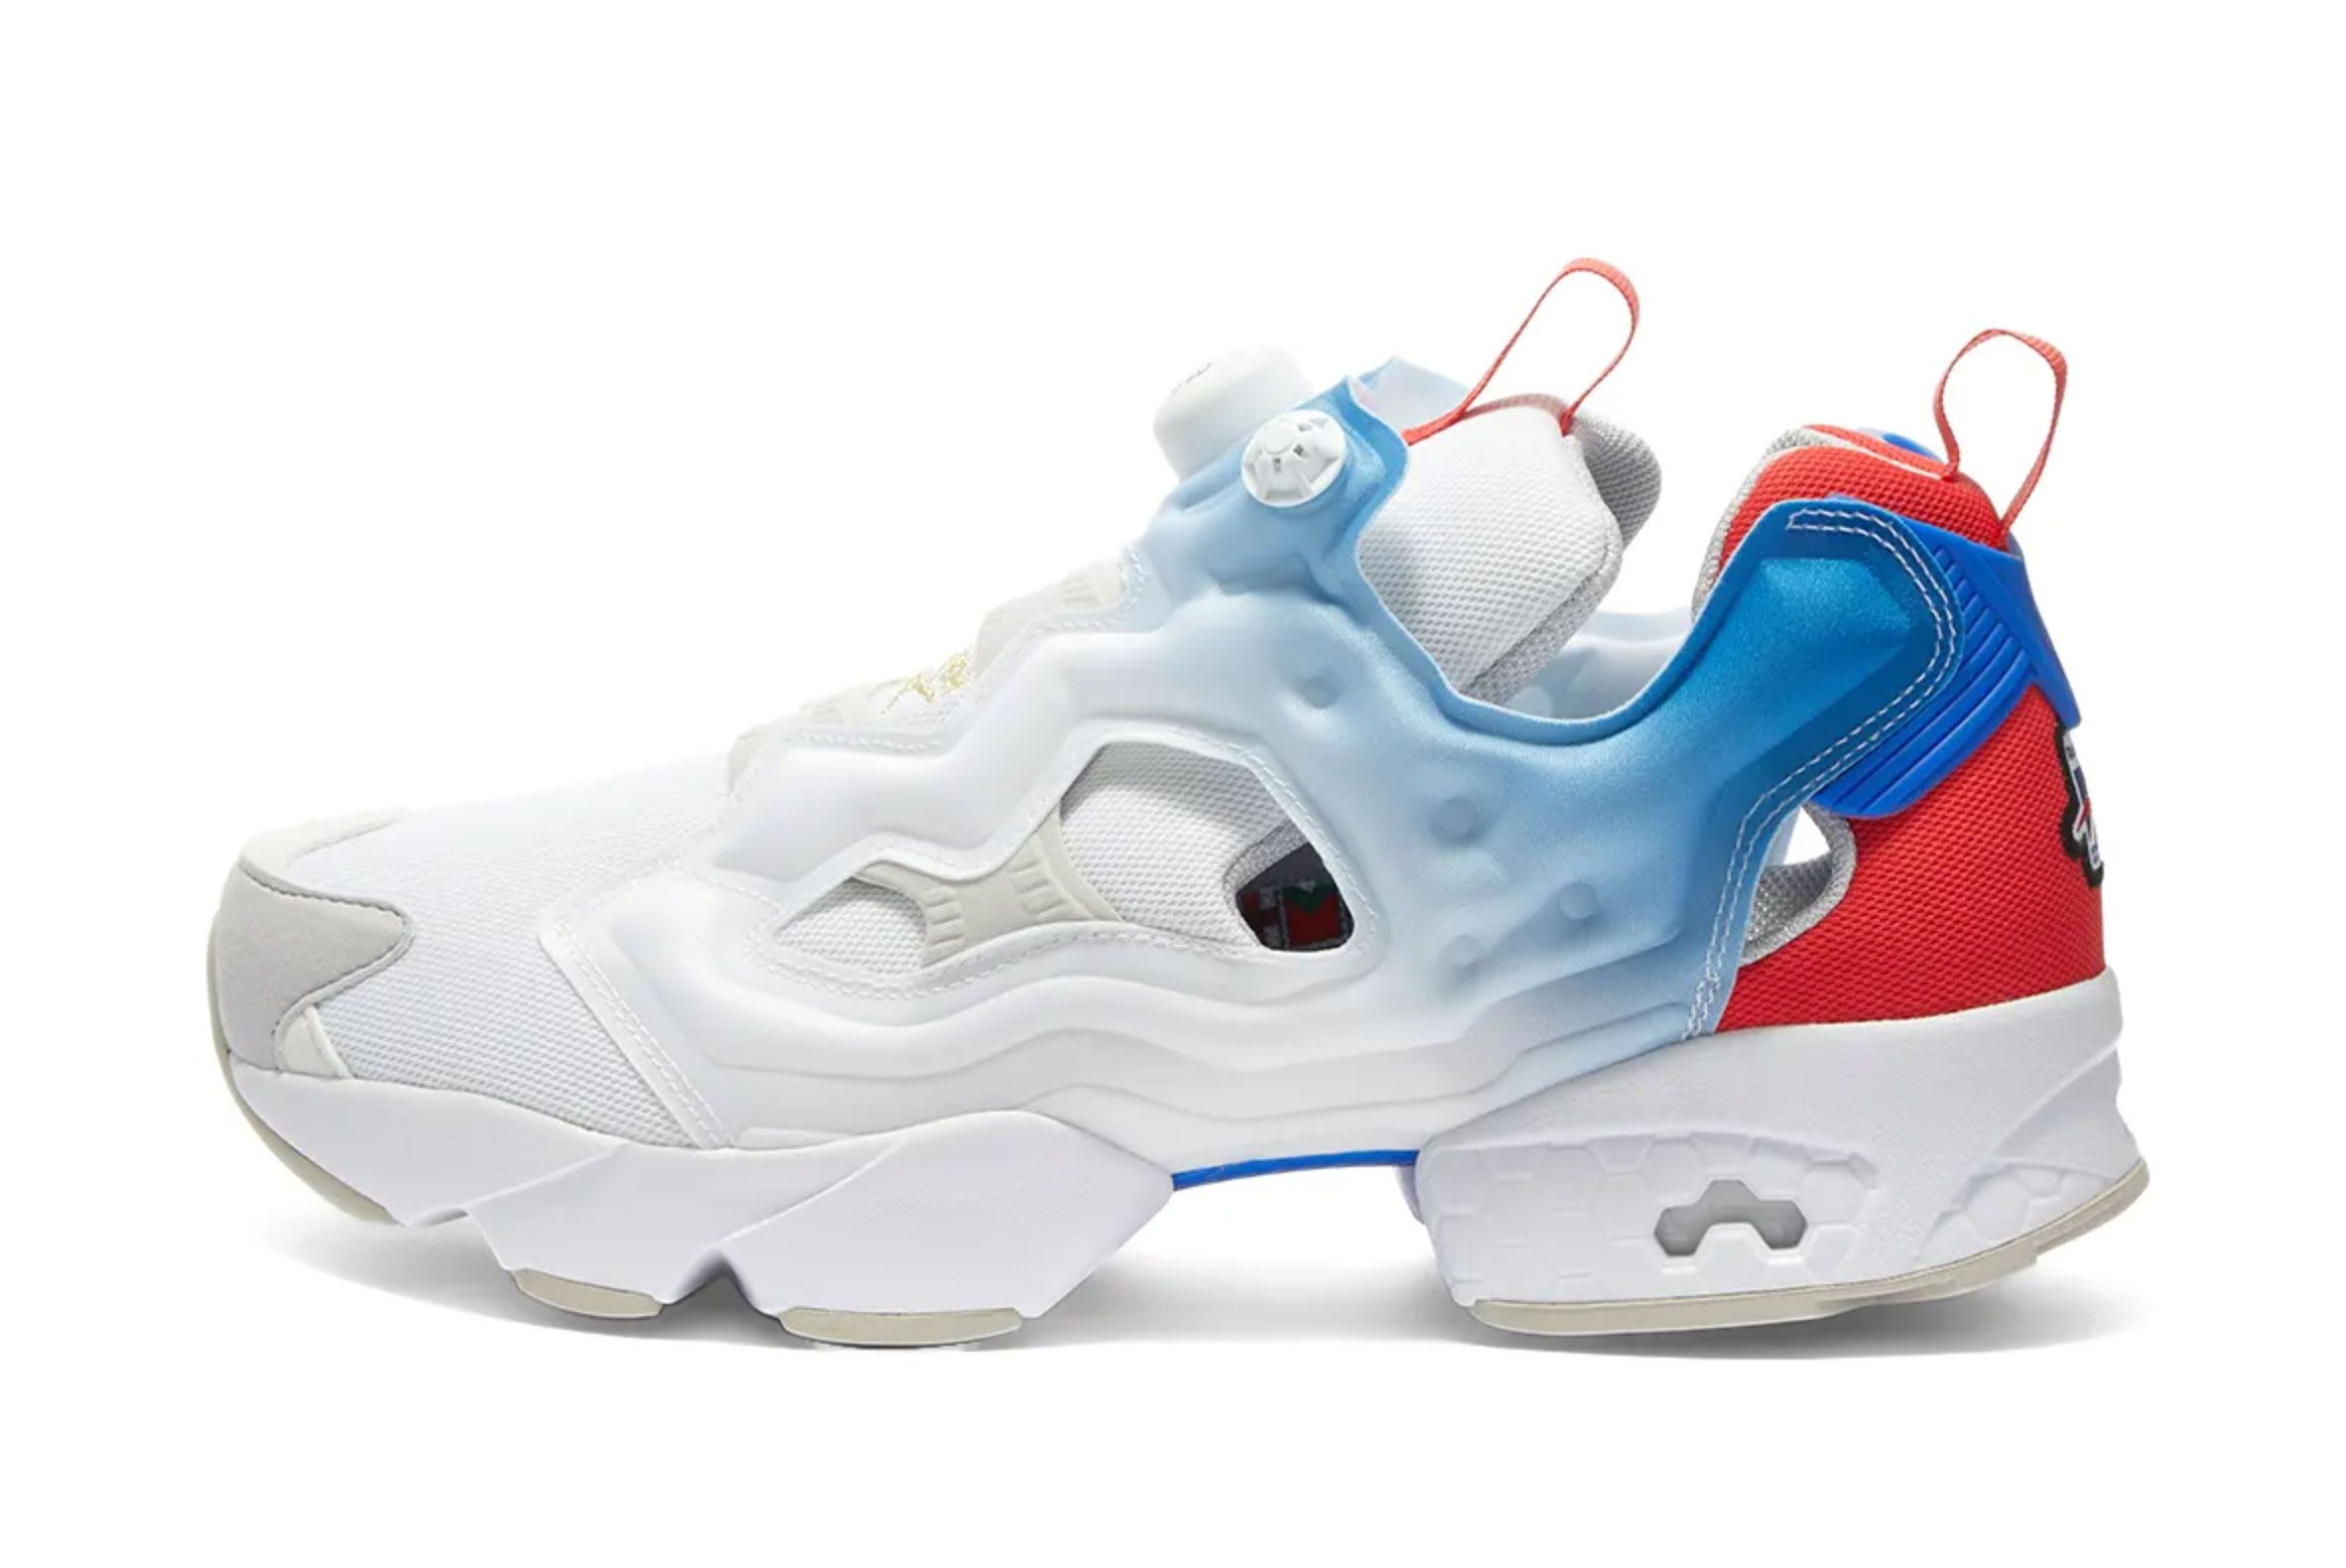 Reebok Instapump Fury (White/Blue/Red)